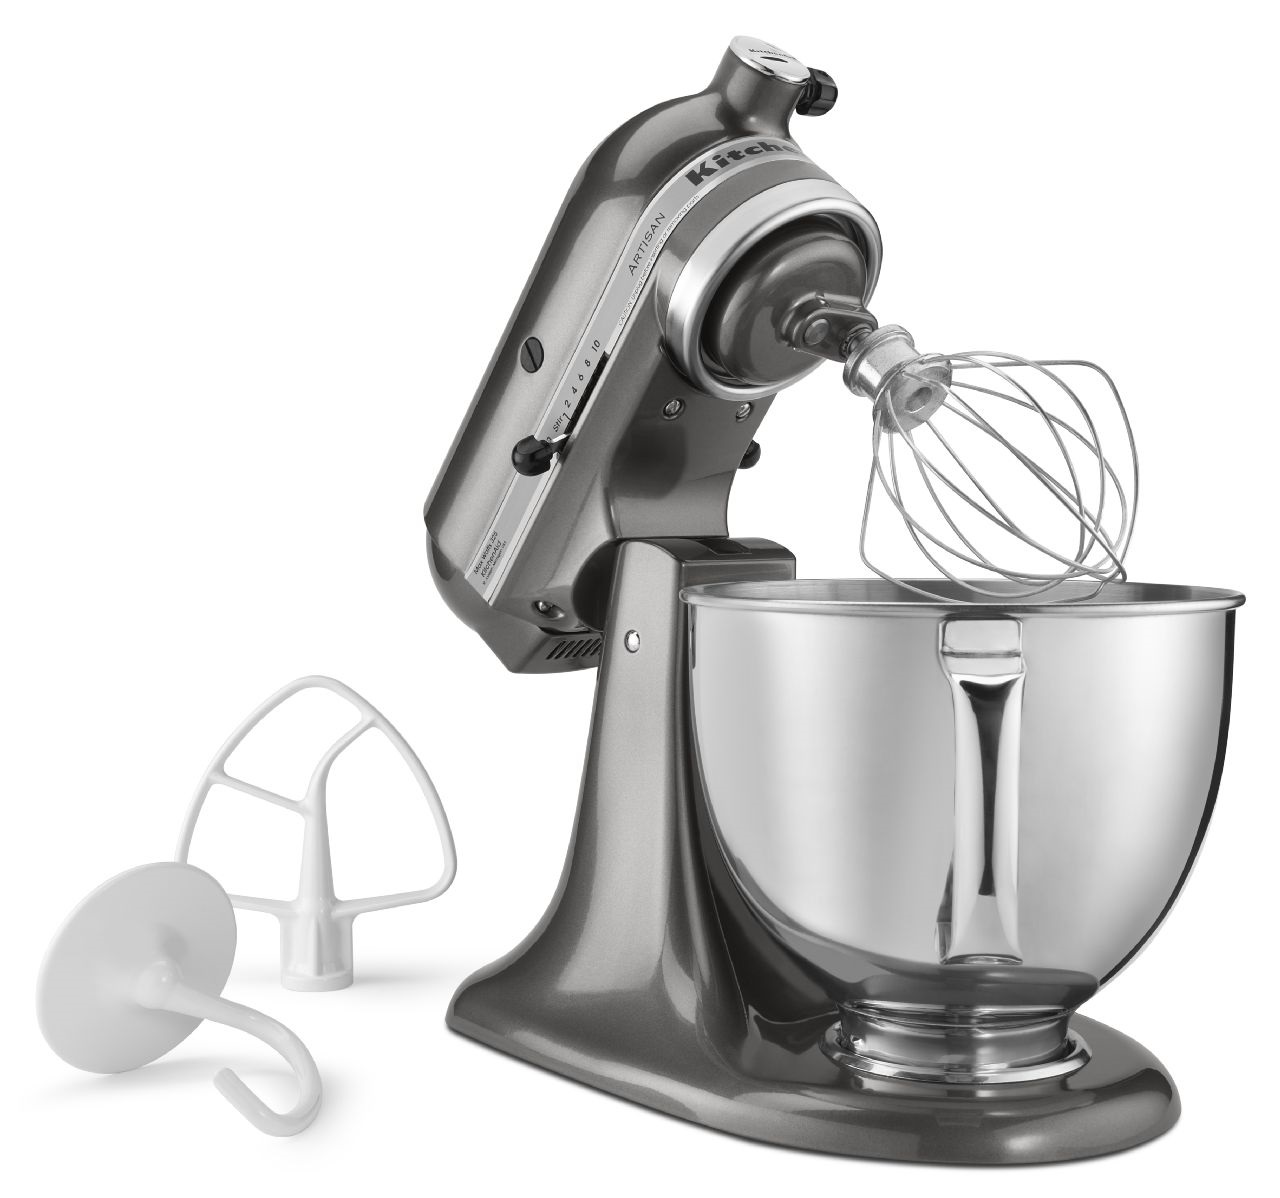 KitchenAid-Refurbished-Artisan-Series-5-Quart-Tilt-Head-Stand-Mixer-RRK150 thumbnail 62